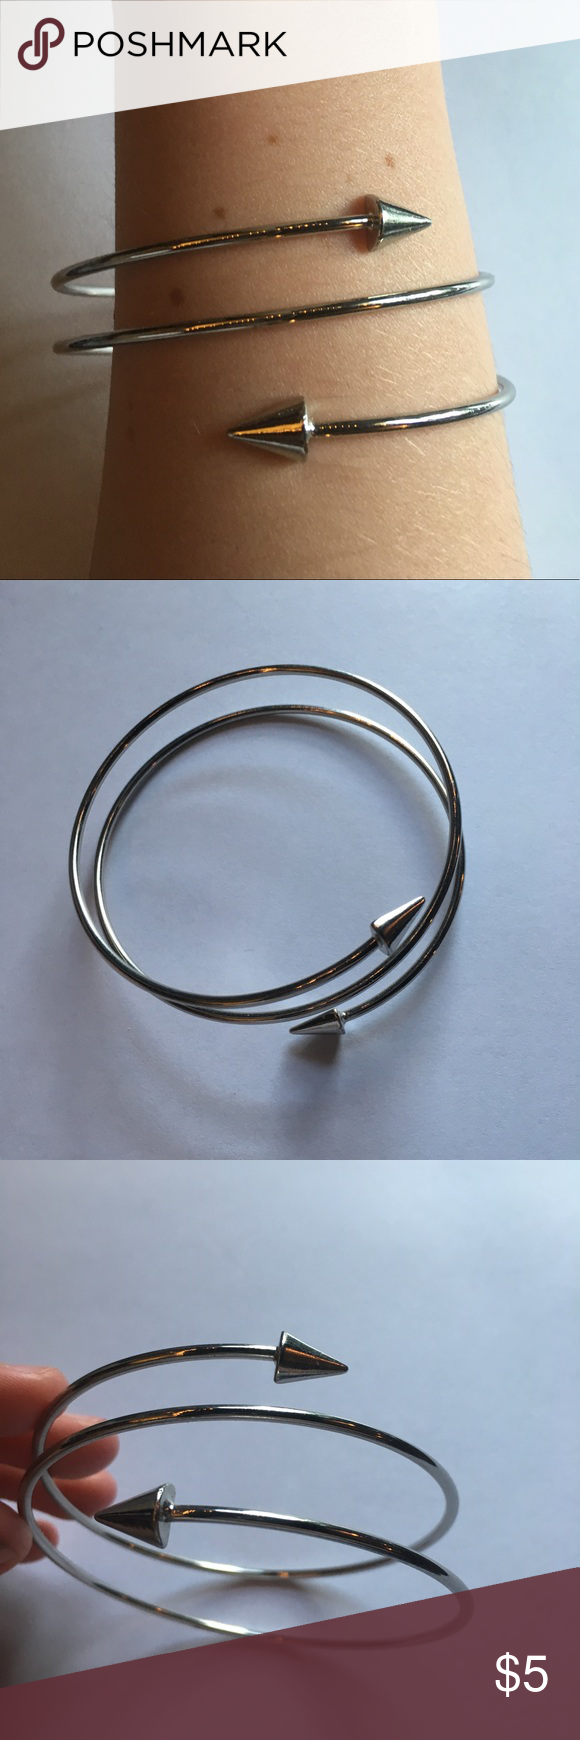 bangles for bangle large bracelets silver wrists